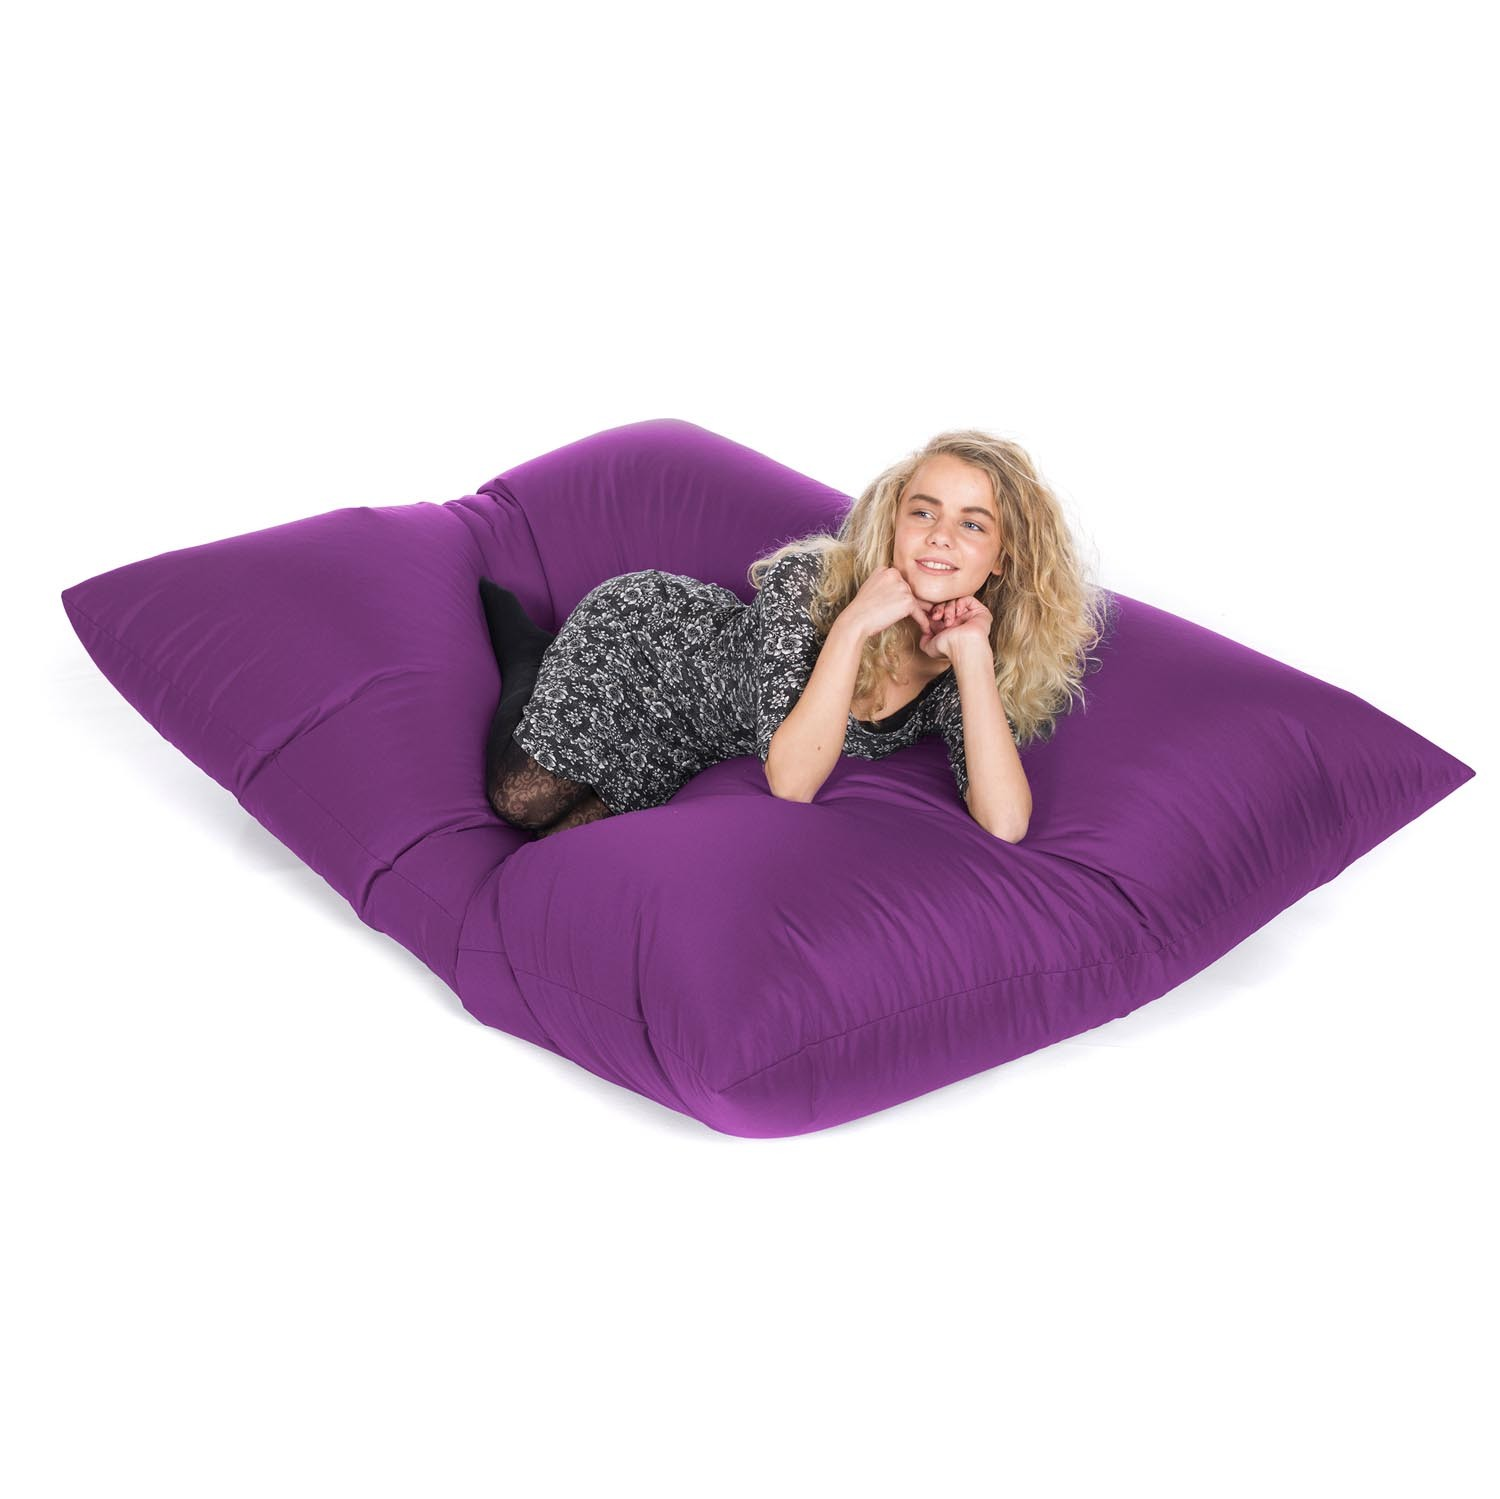 slab bean bags outdoor purple 1